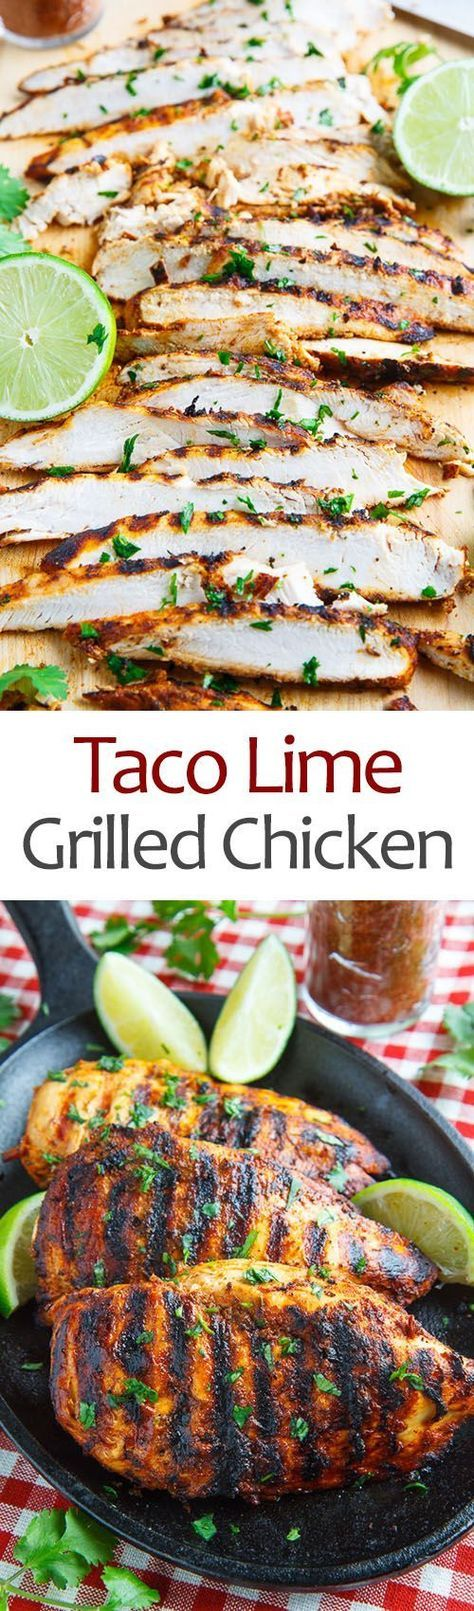 Taco Lime Grilled Chicken - this would be great on its own or in some tortillas. : closetcooking